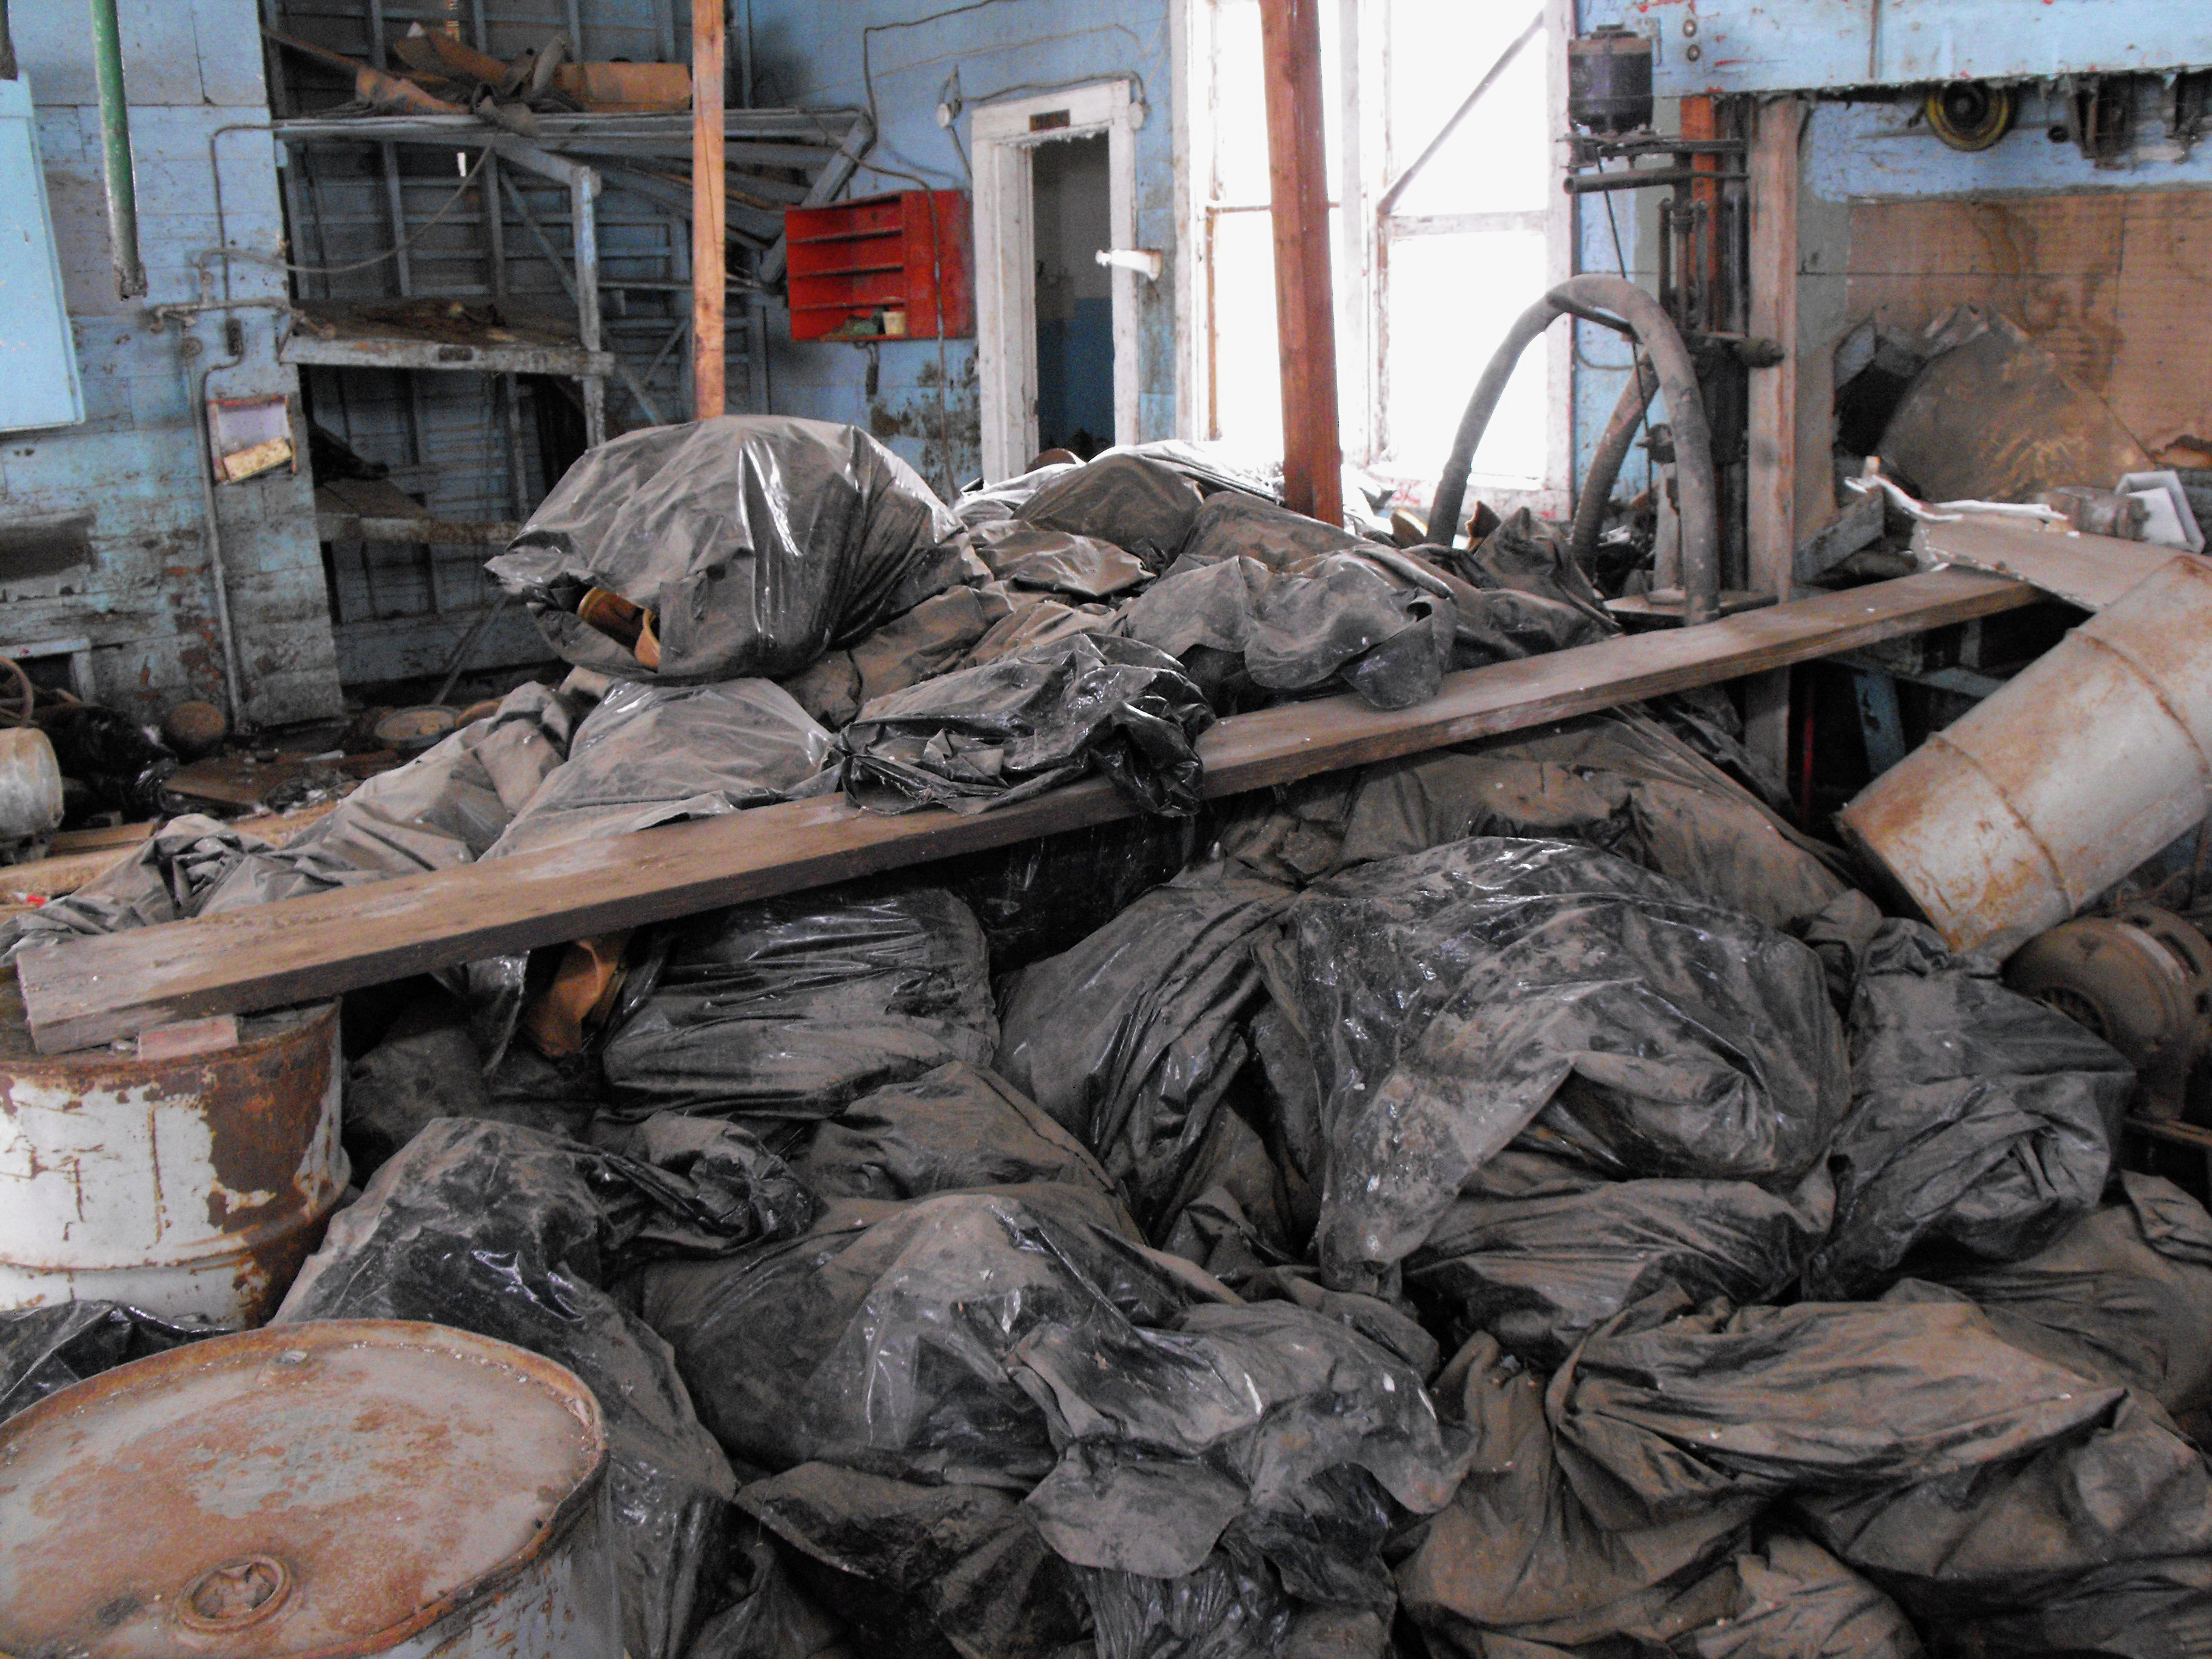 Bags full of radioactive oil filter socks, the nets that strain liquids during the oil production process, piled in an abandoned building in Noonan, N.D. North Dakota